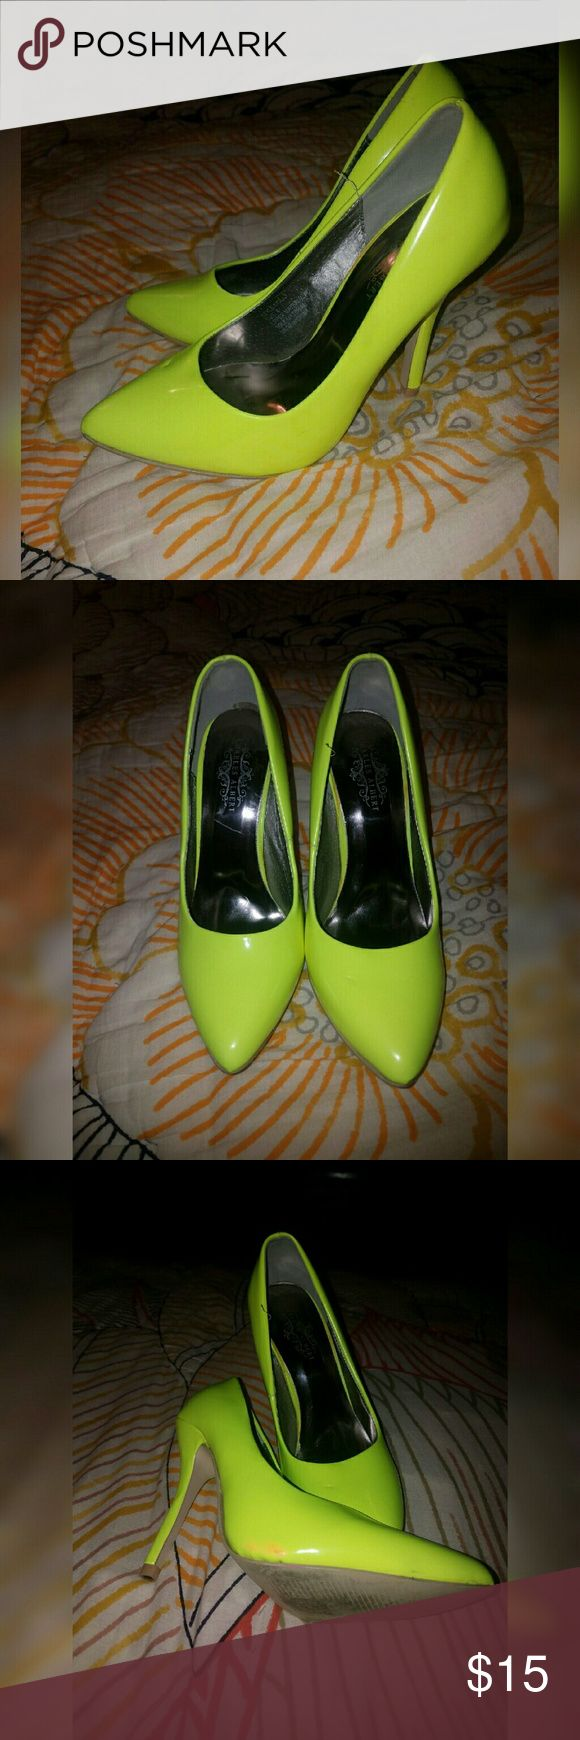 Charles Albert Neon Yellow Pump Neon yellow pumps, worn a few times has some scuff marks and red stain on the side. Charles Albert  Shoes Heels